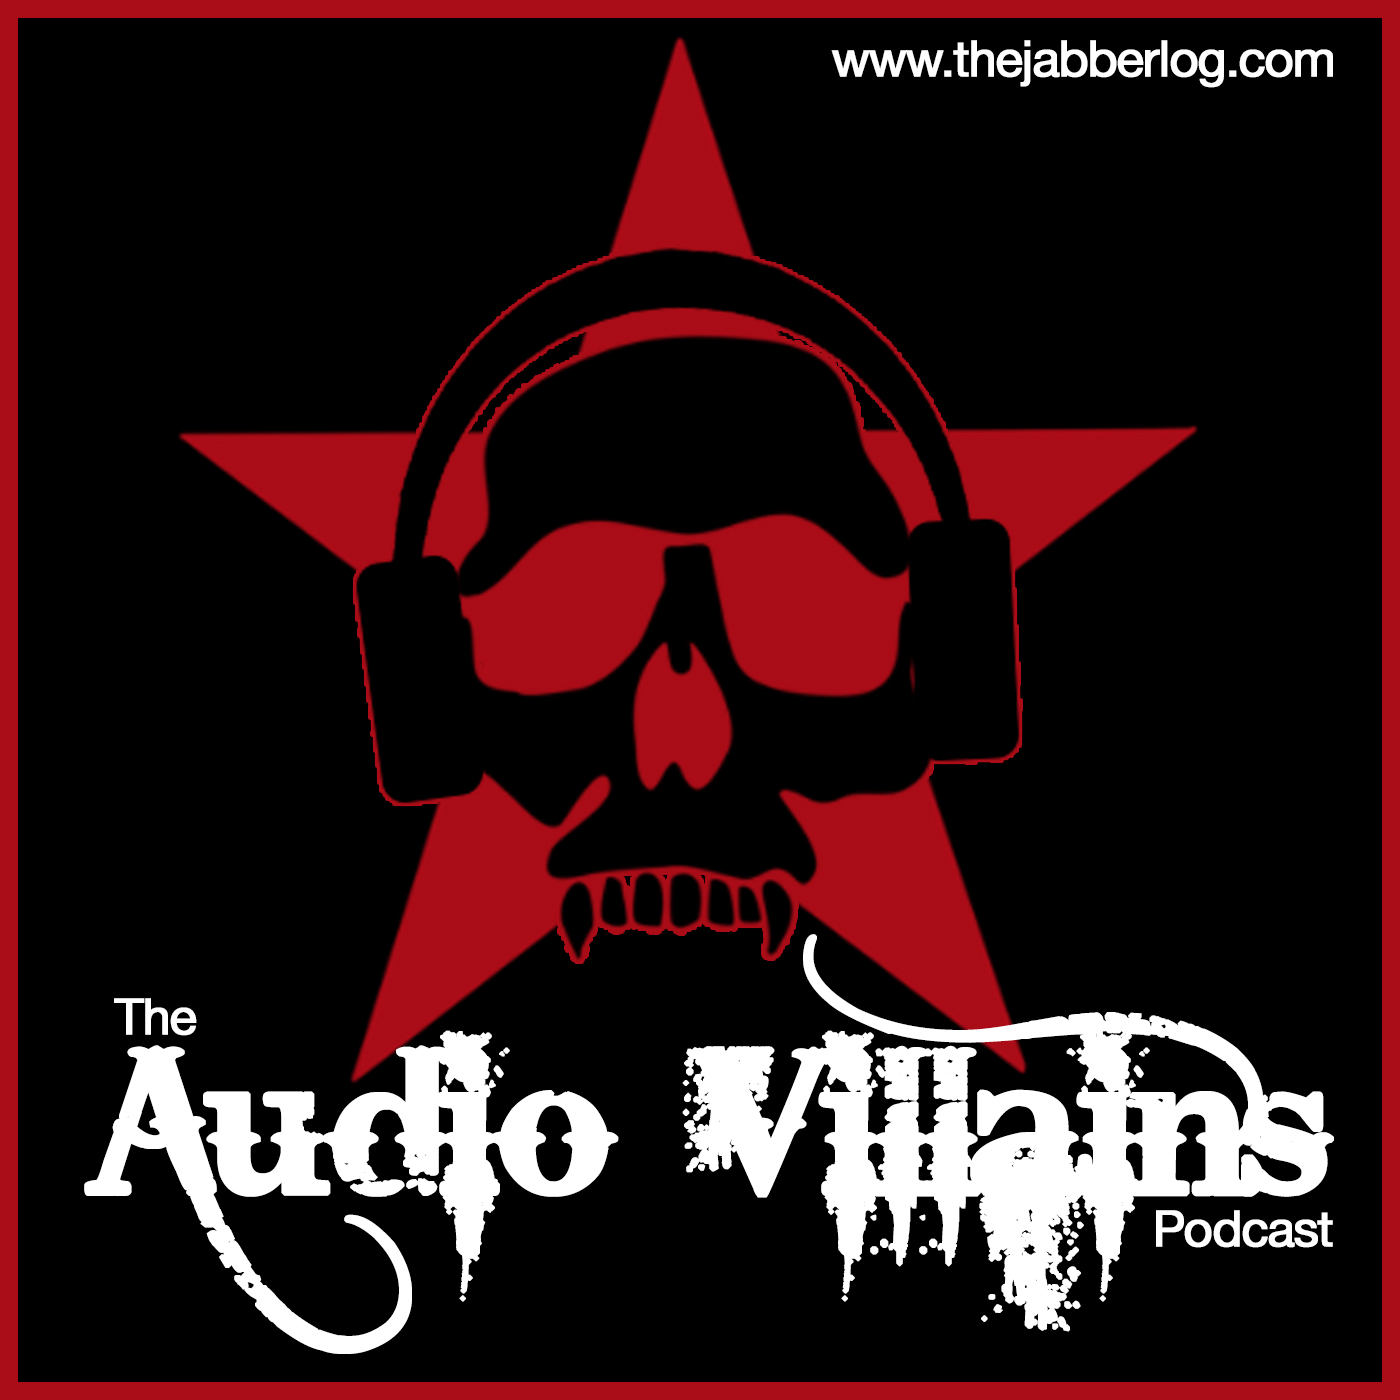 newAudioVillainsPodcastCover3